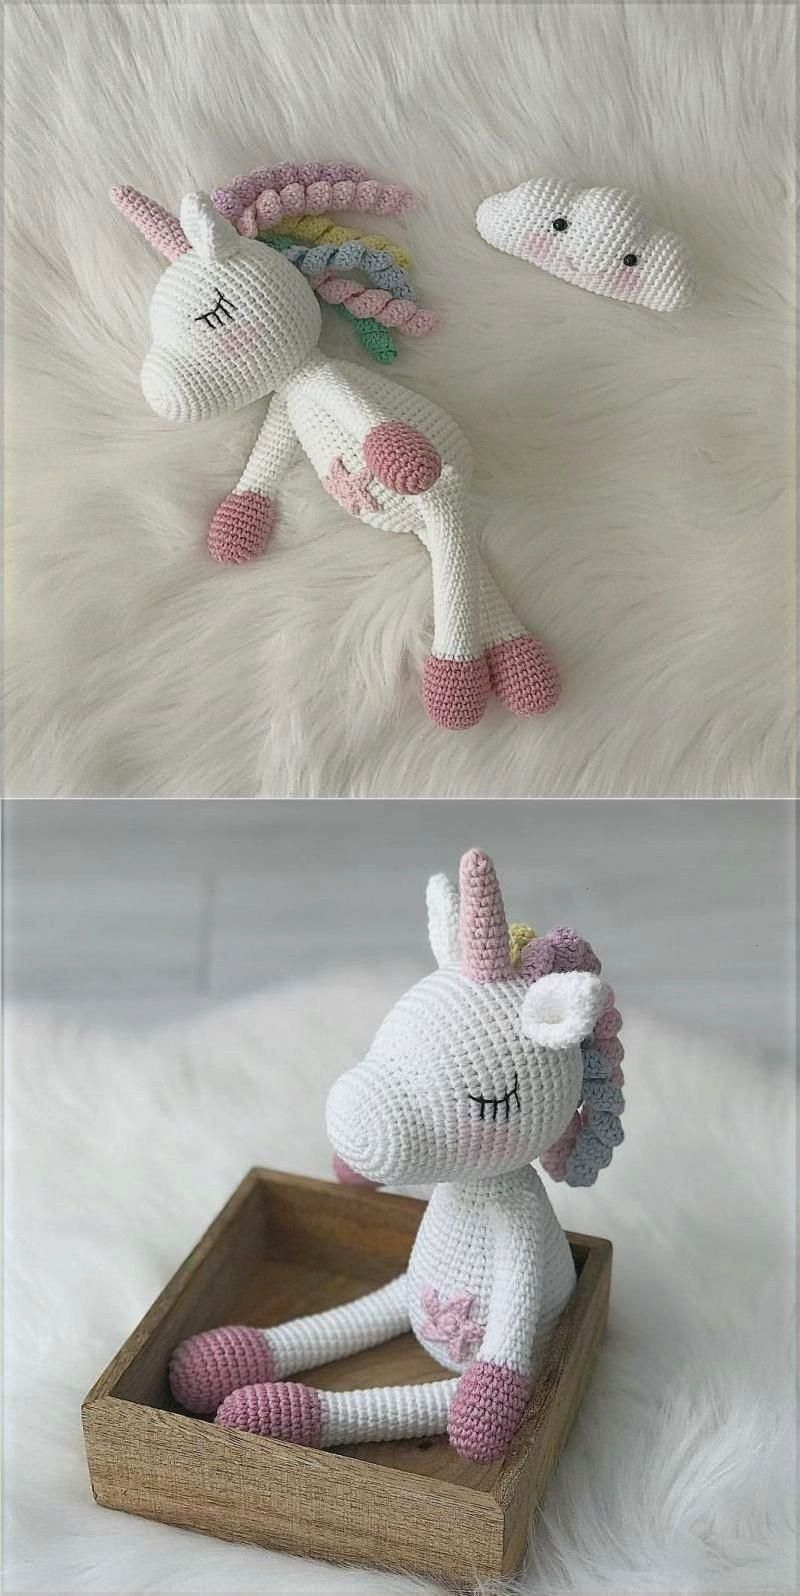 pony Crochet horse pink pony Brown Sheep Amigurumi crochet animal nursery gift baby shower b Crochet pony Crochet horse pink pony Brown Sheep Amigurumi crochet animal nur...